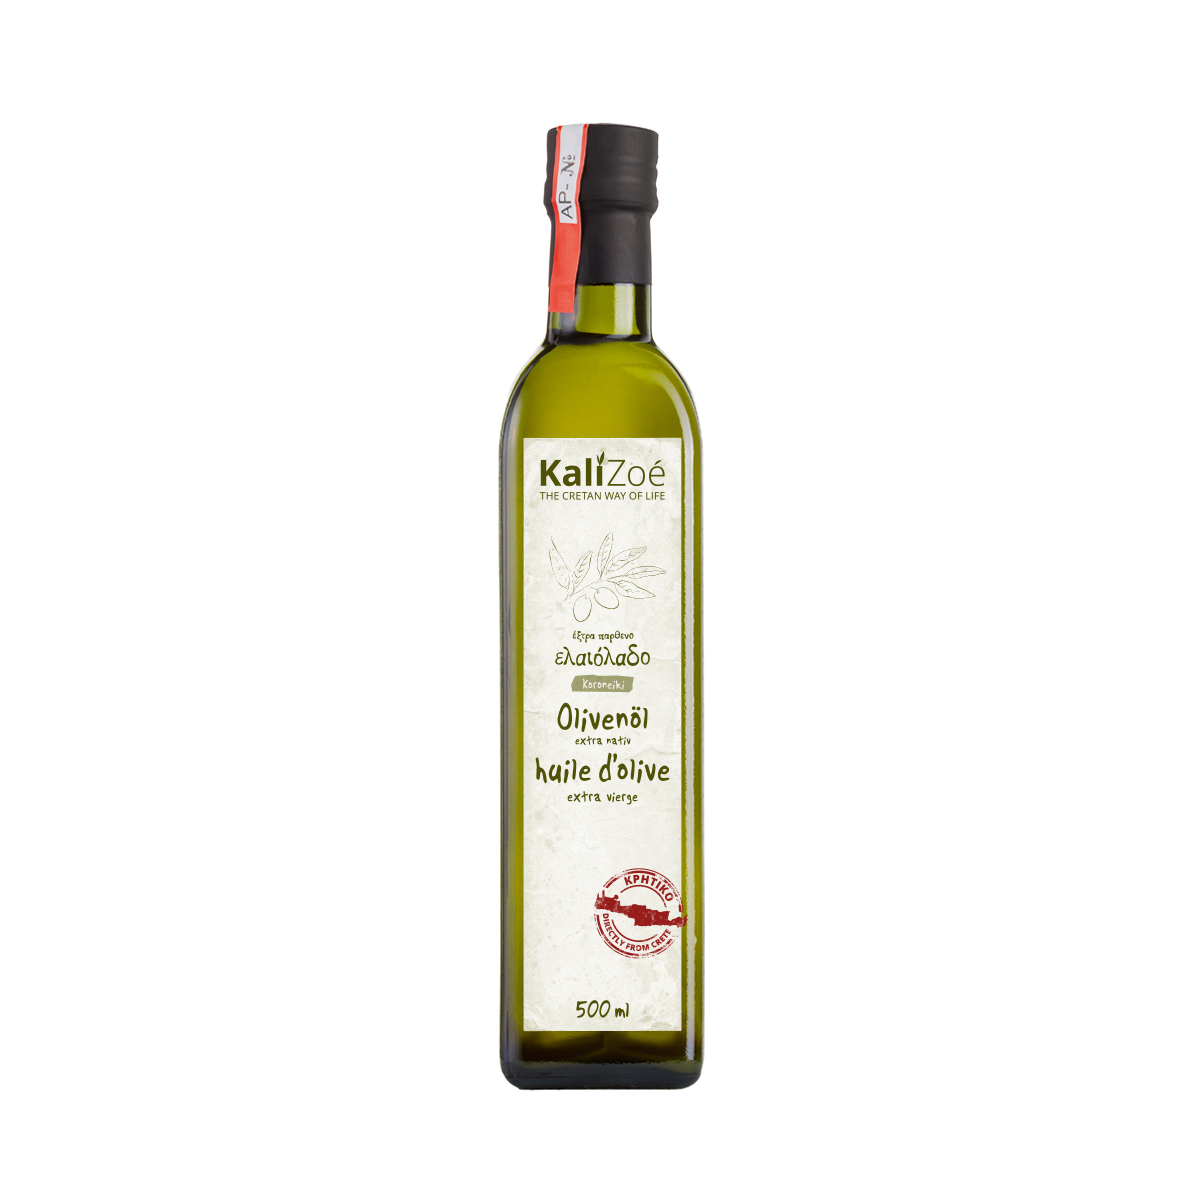 Huile d'olive extra vierge – 500ml